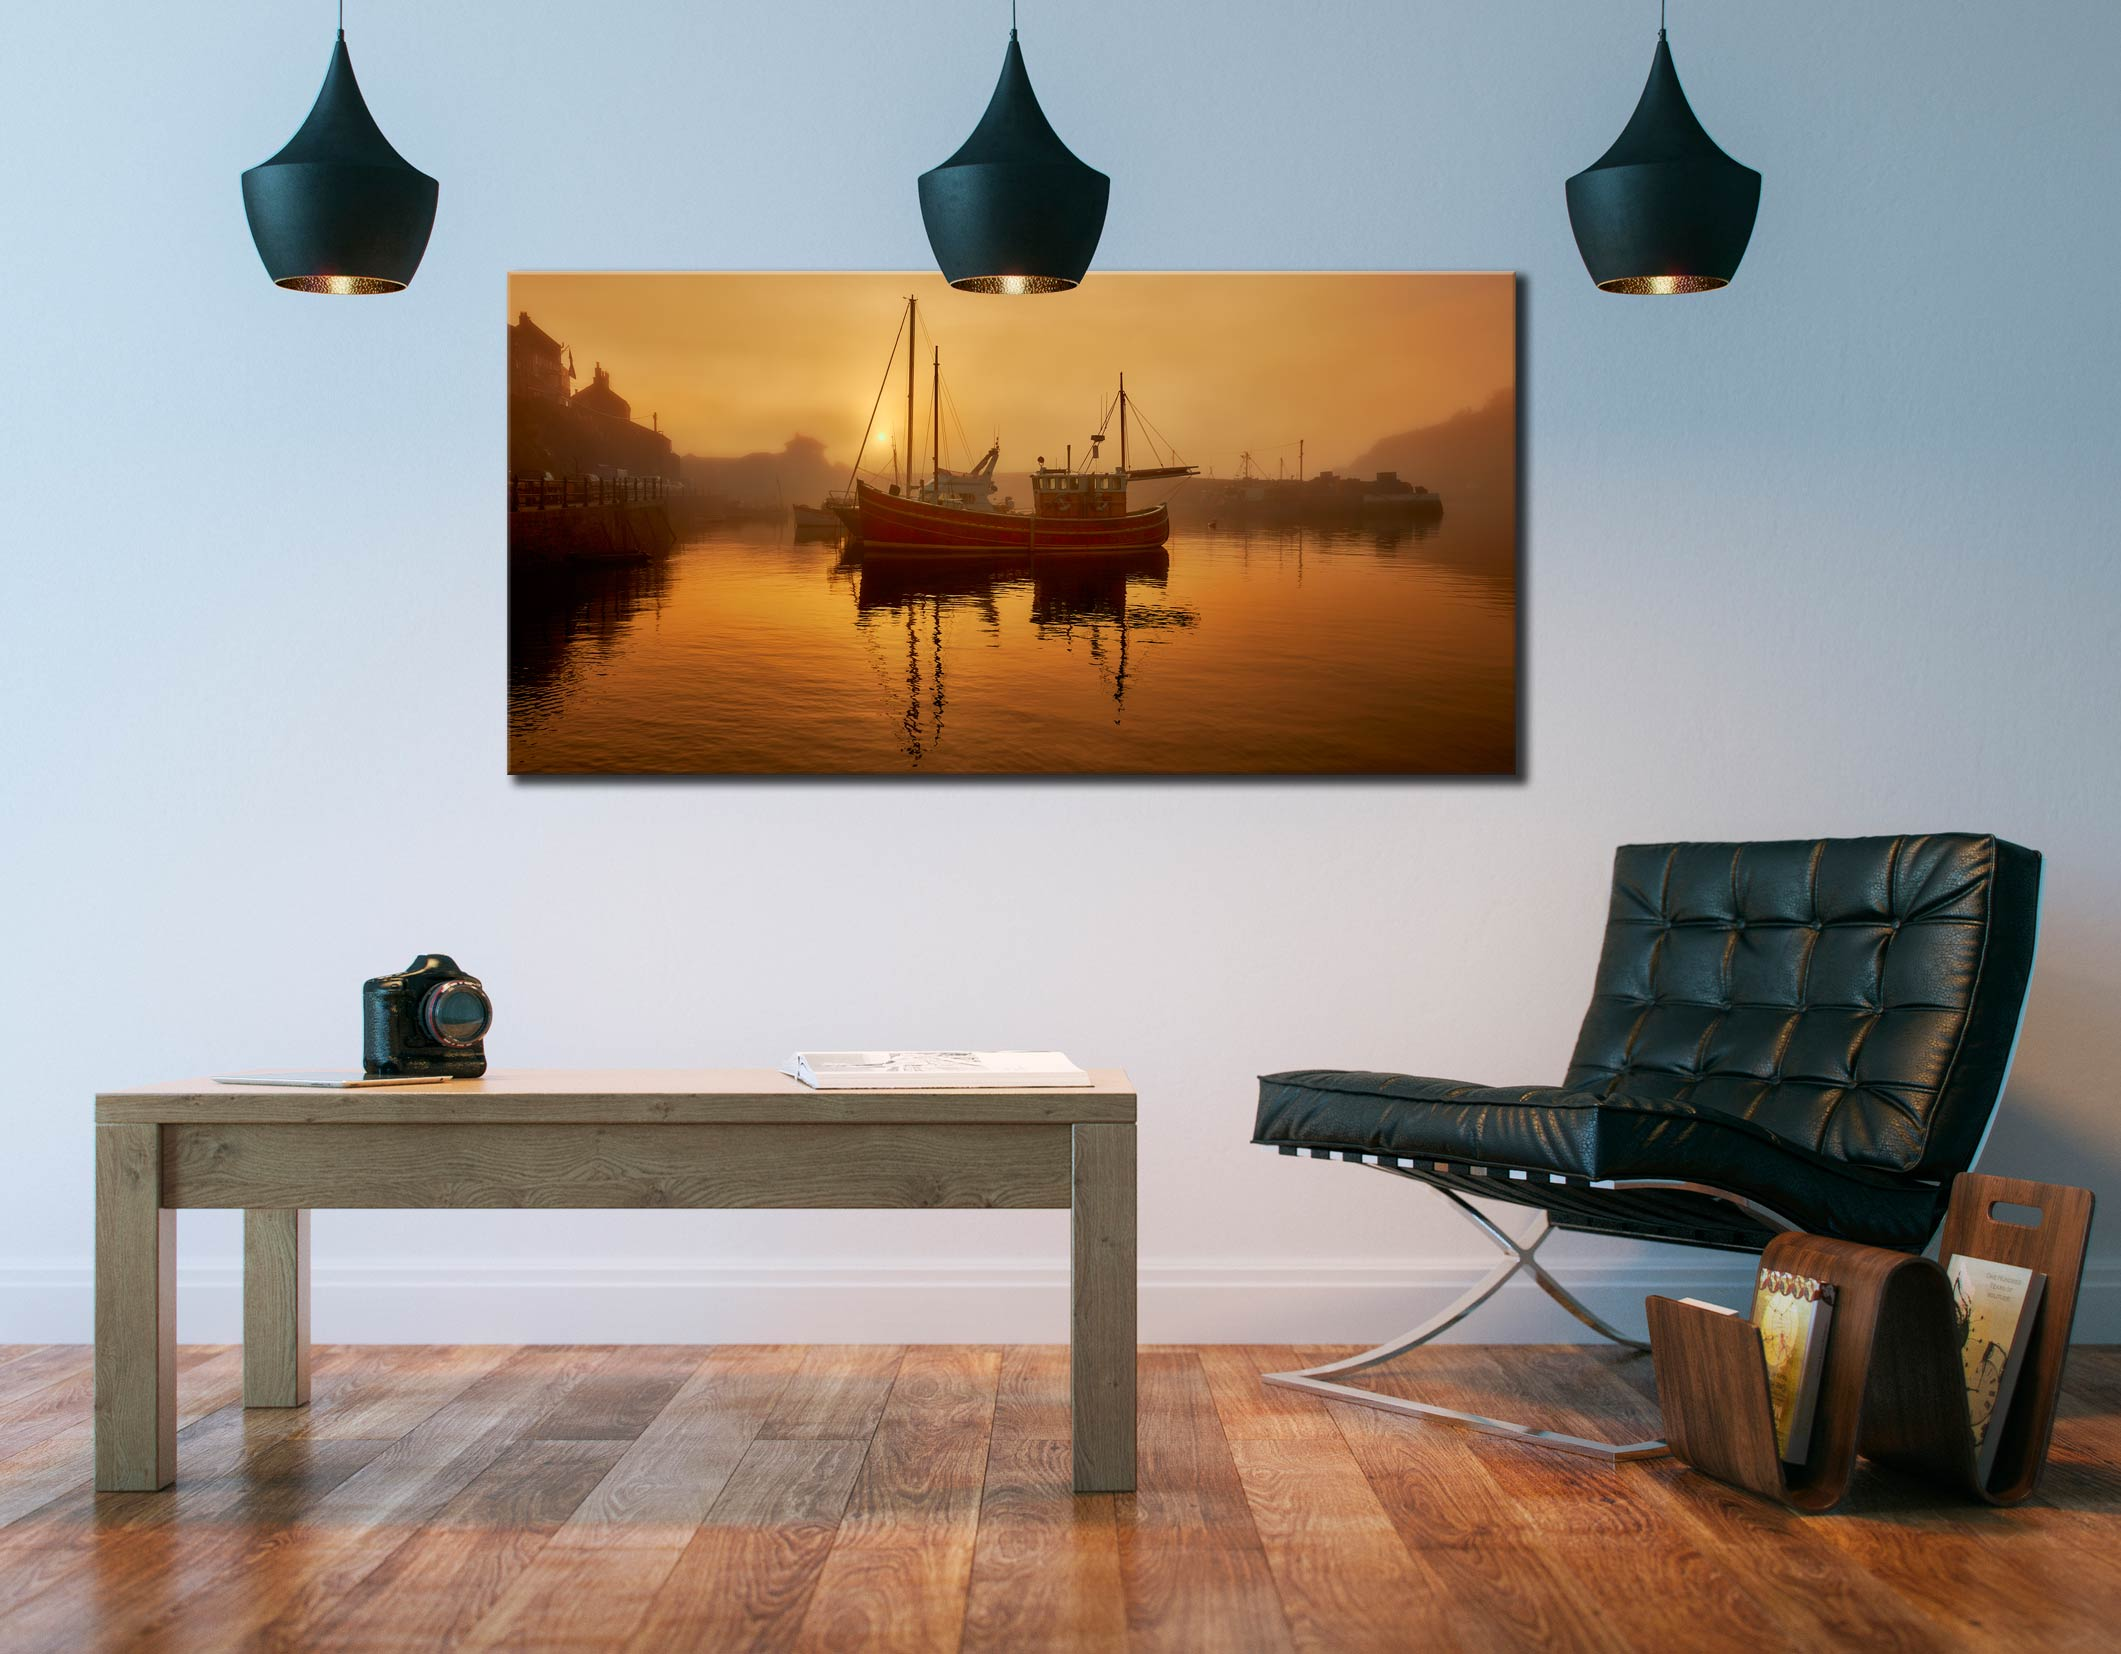 Misty Mevagissy Harbour - Canvas Print on Wall